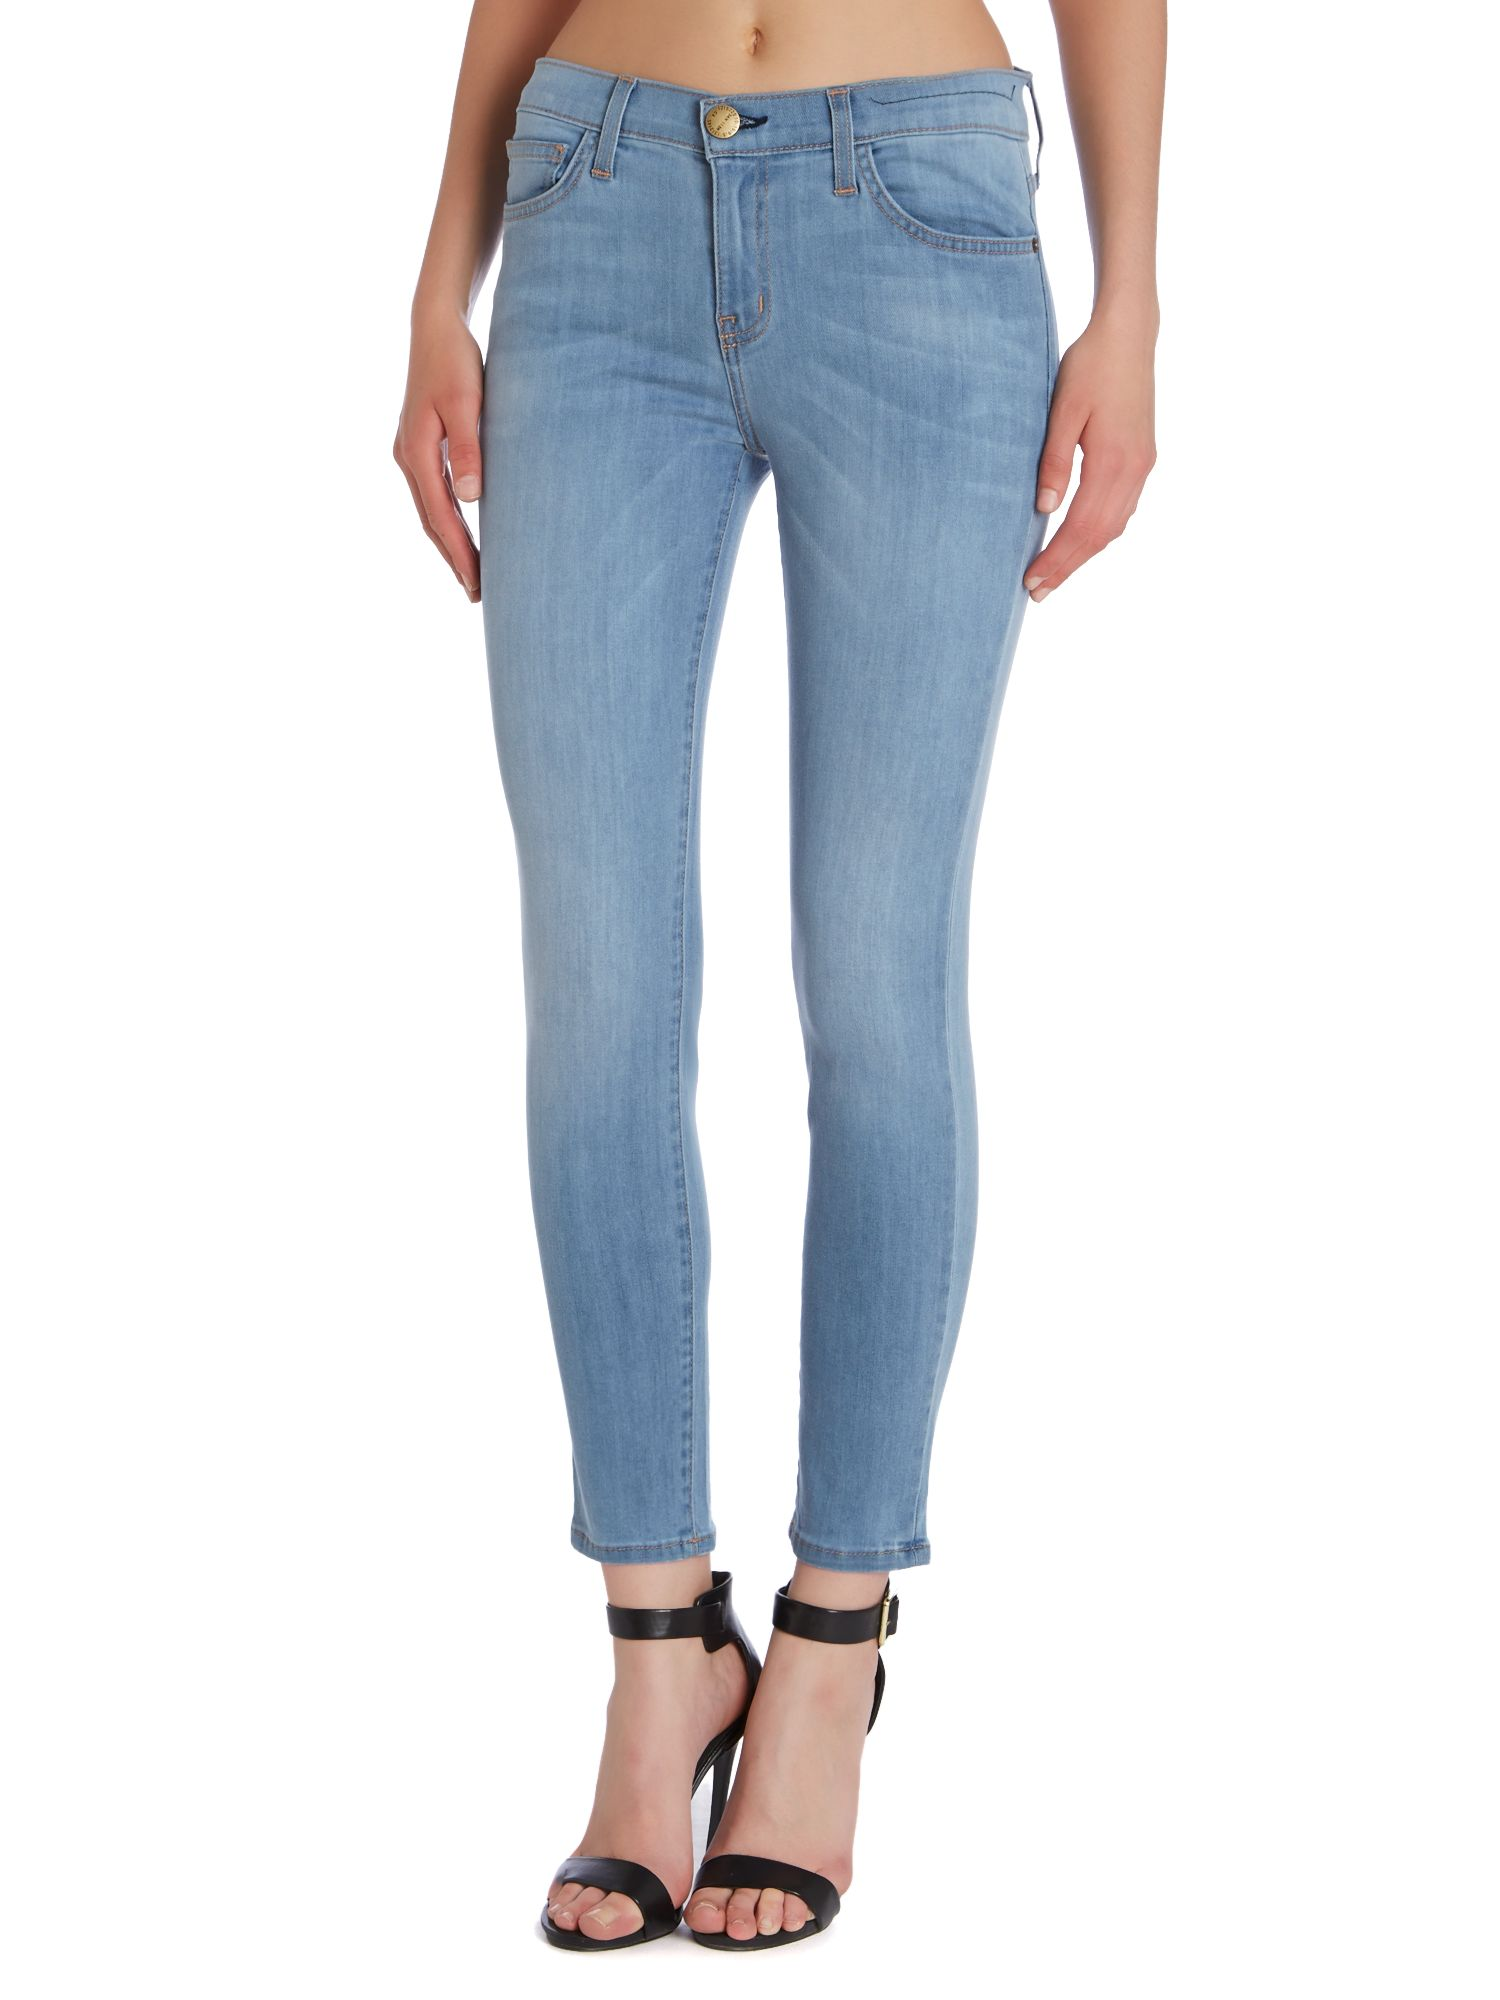 The Stiletto skinny jeans in sterling